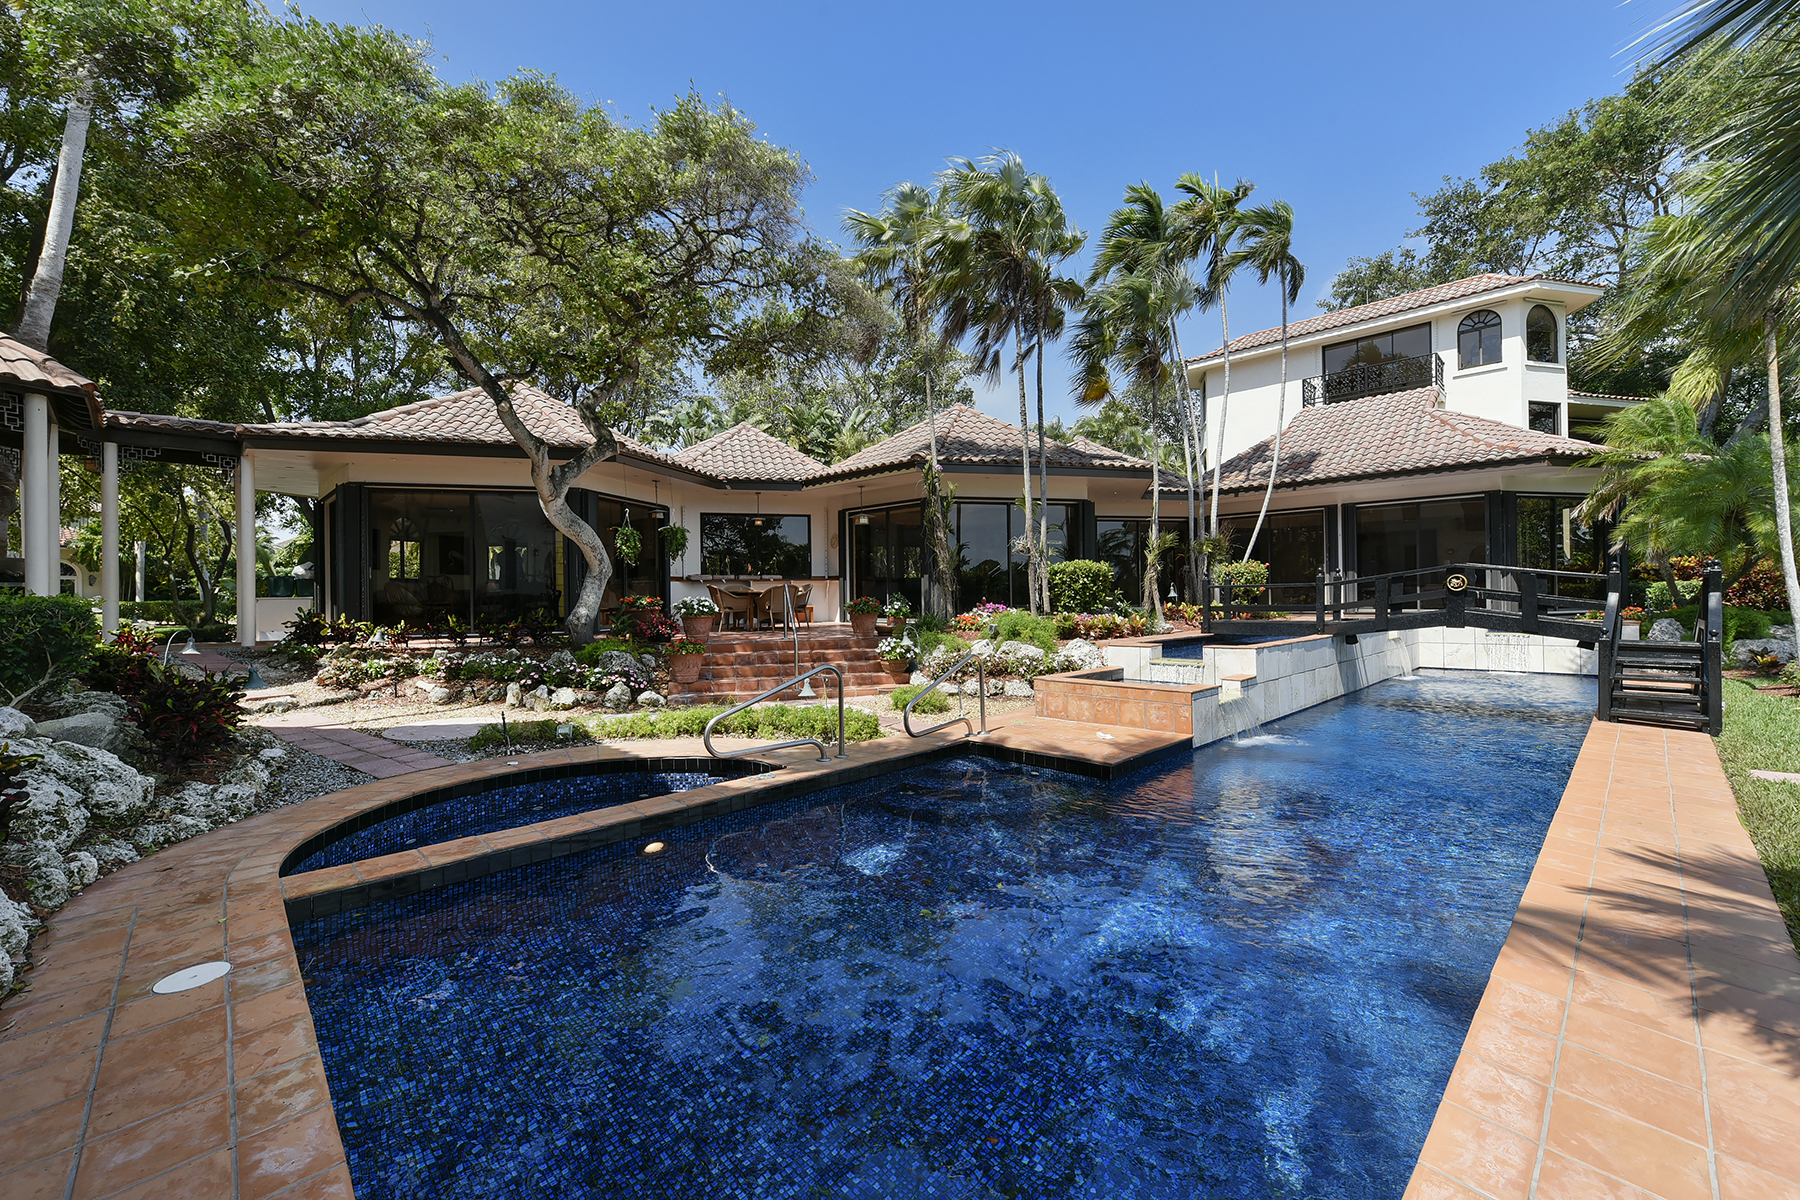 Moradia para Venda às Architecturally Stunning Waterfront Home at Ocean Reef 44 Cardinal Lane Ocean Reef Community, Key Largo, Florida, 33037 Estados Unidos